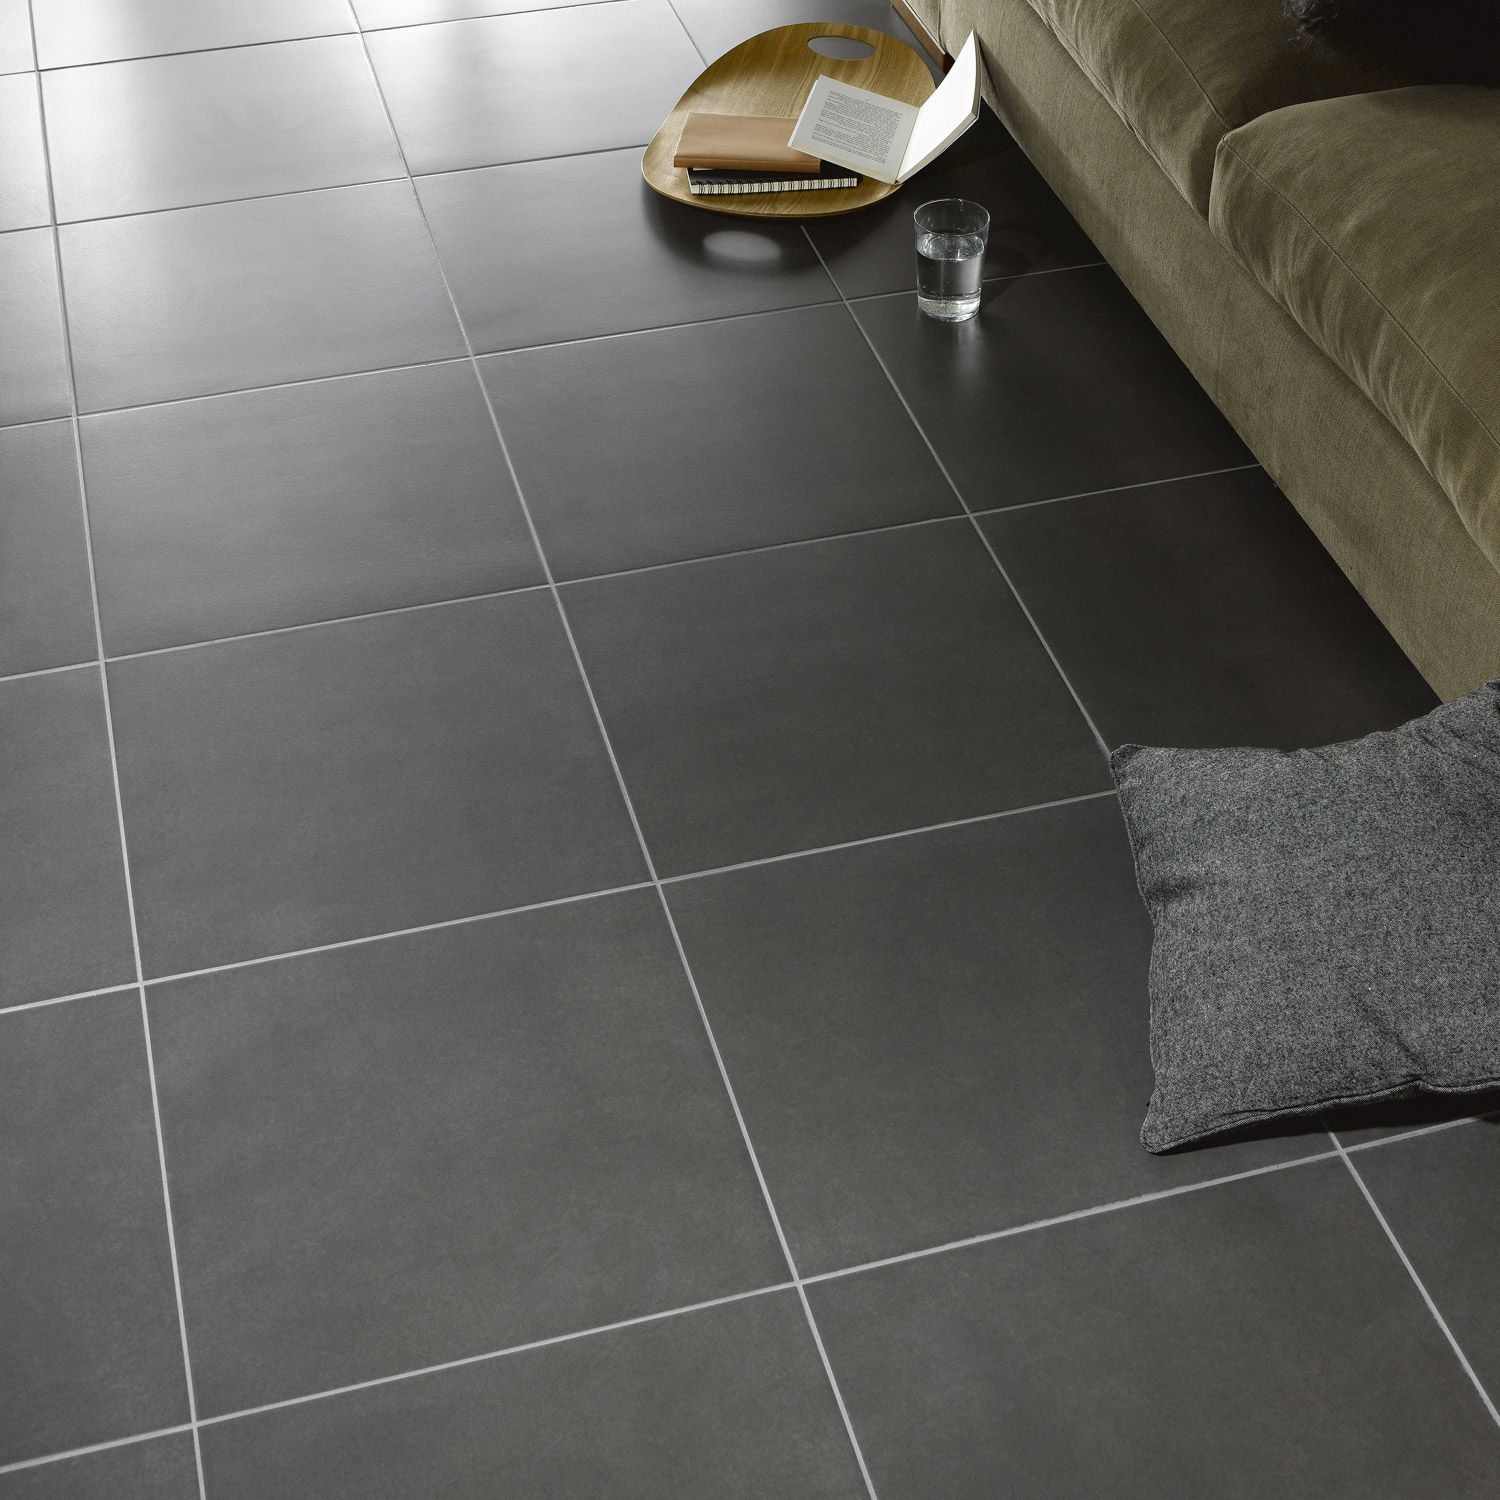 Carrelage sol gris magasin leroymerlingu rande for Carrelage ardoise sol